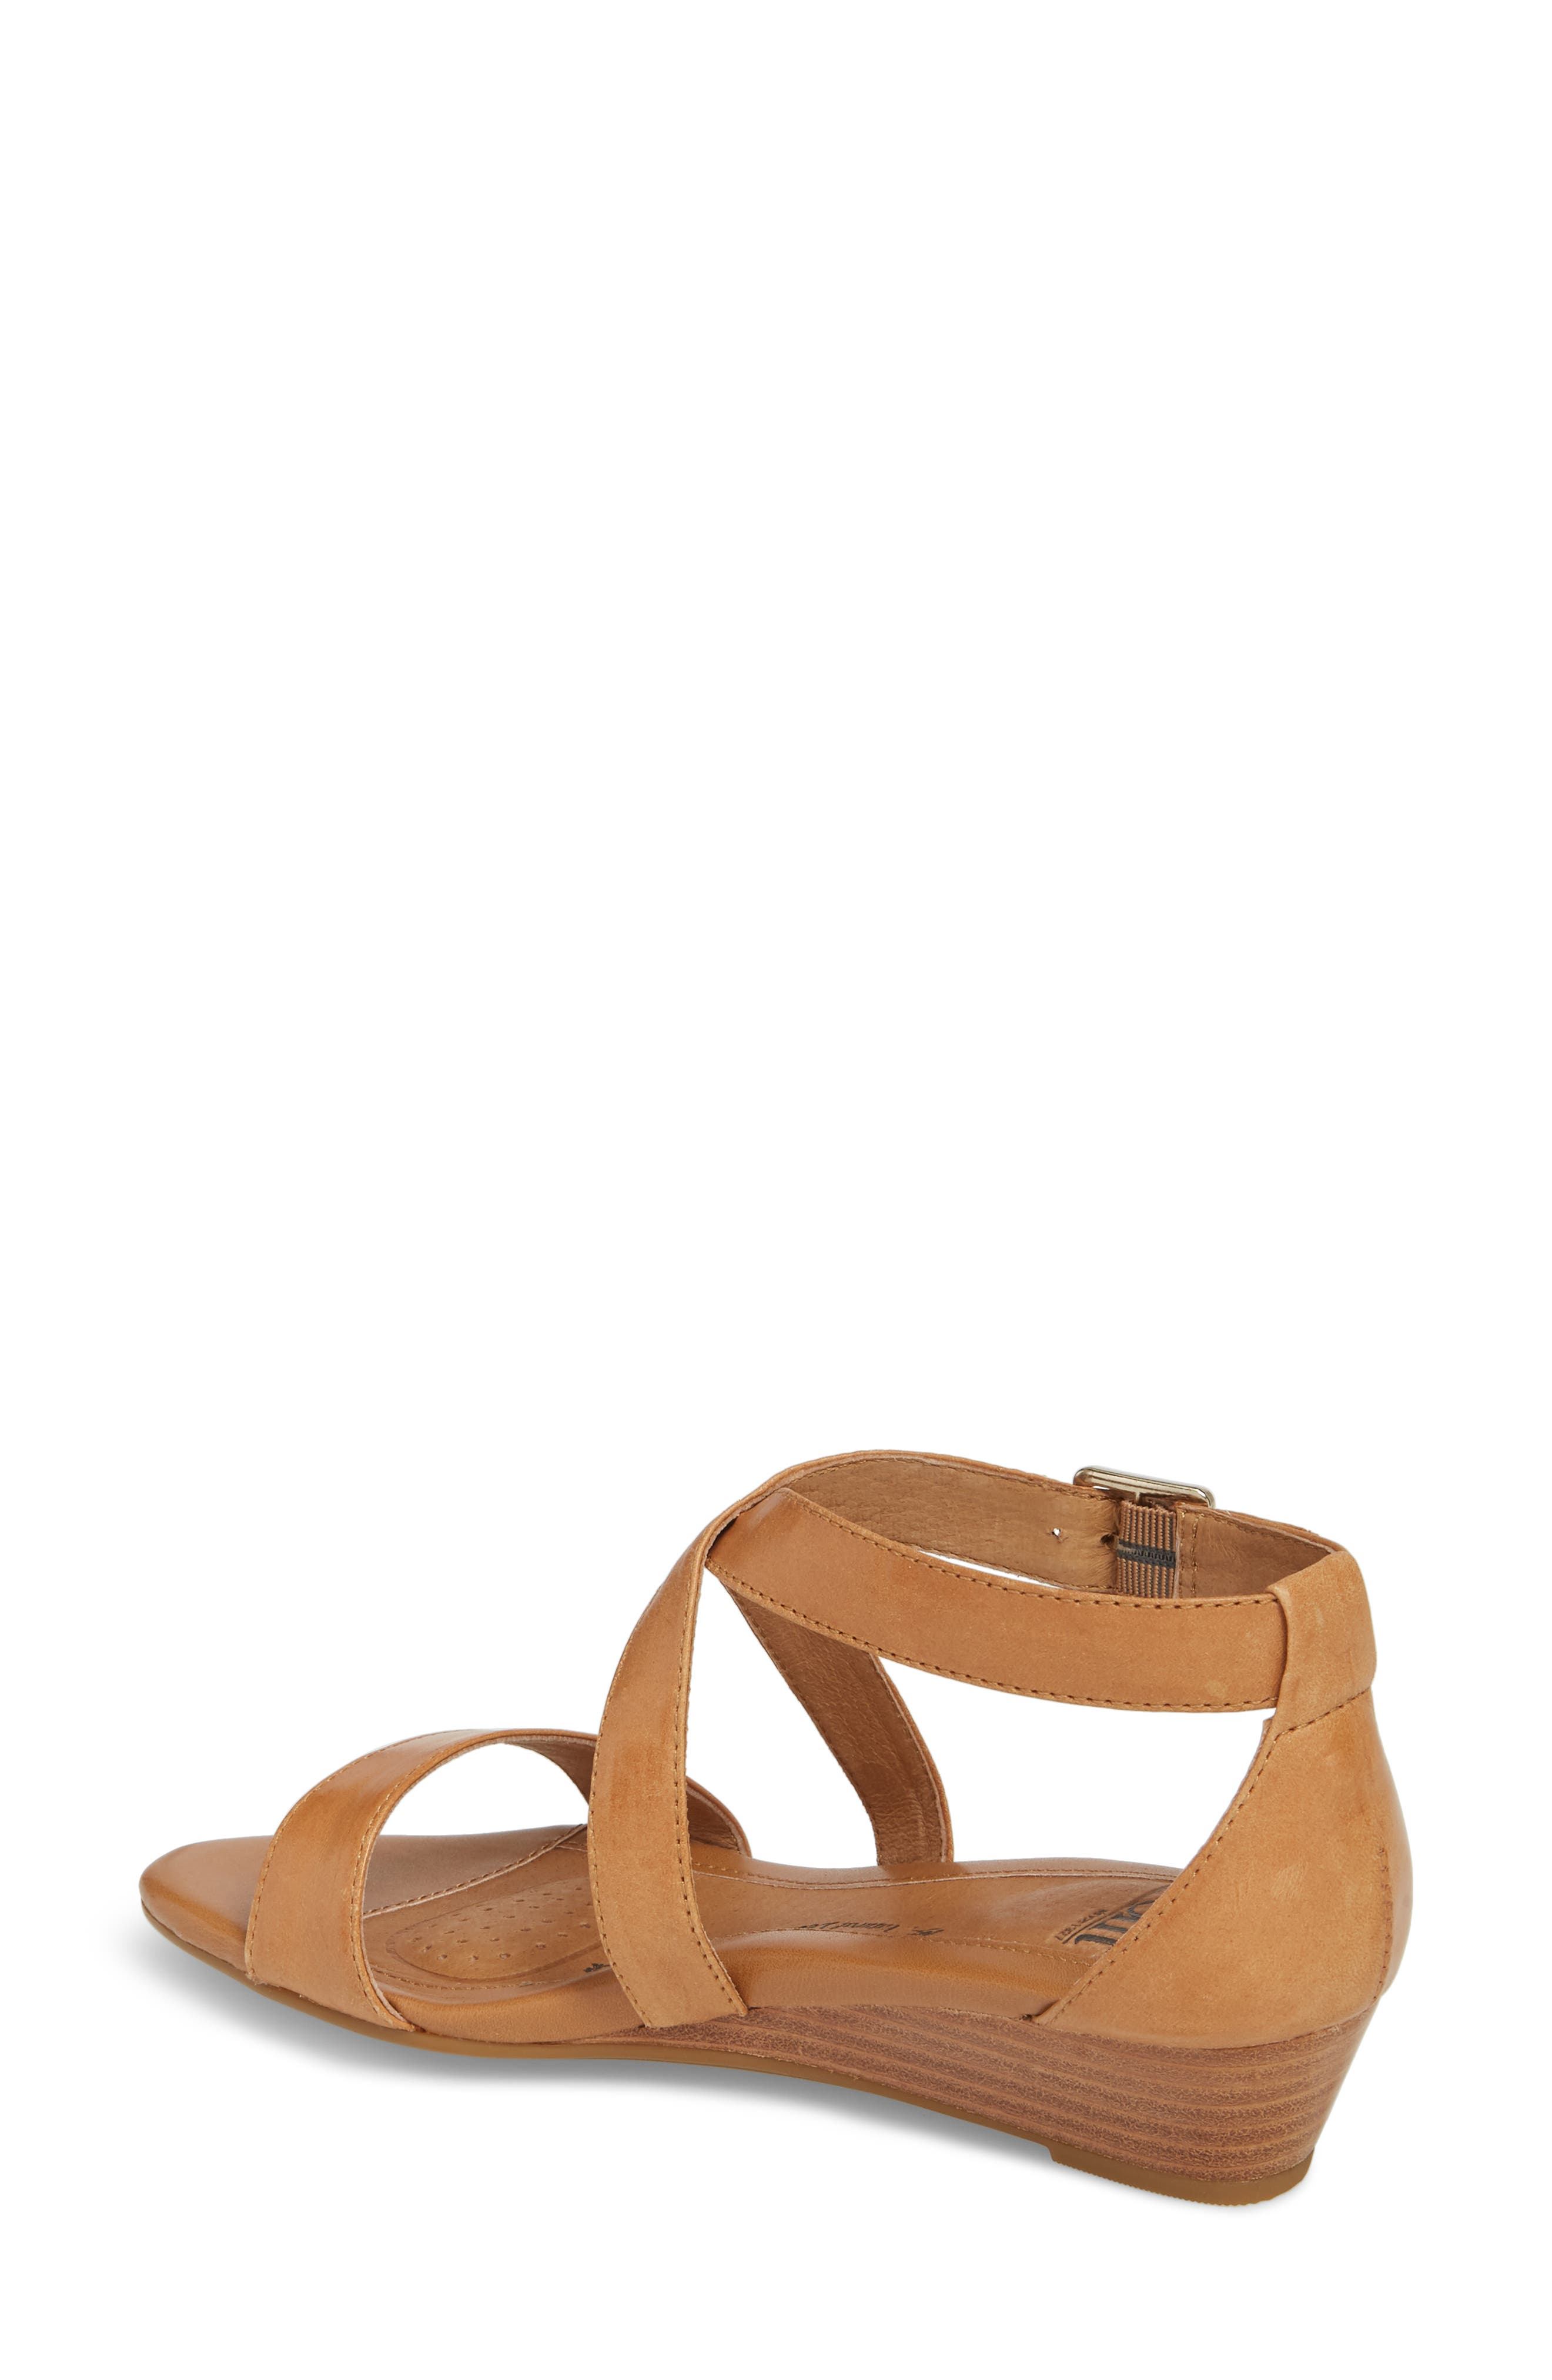 'Innis' Low Wedge Sandal,                             Alternate thumbnail 15, color,